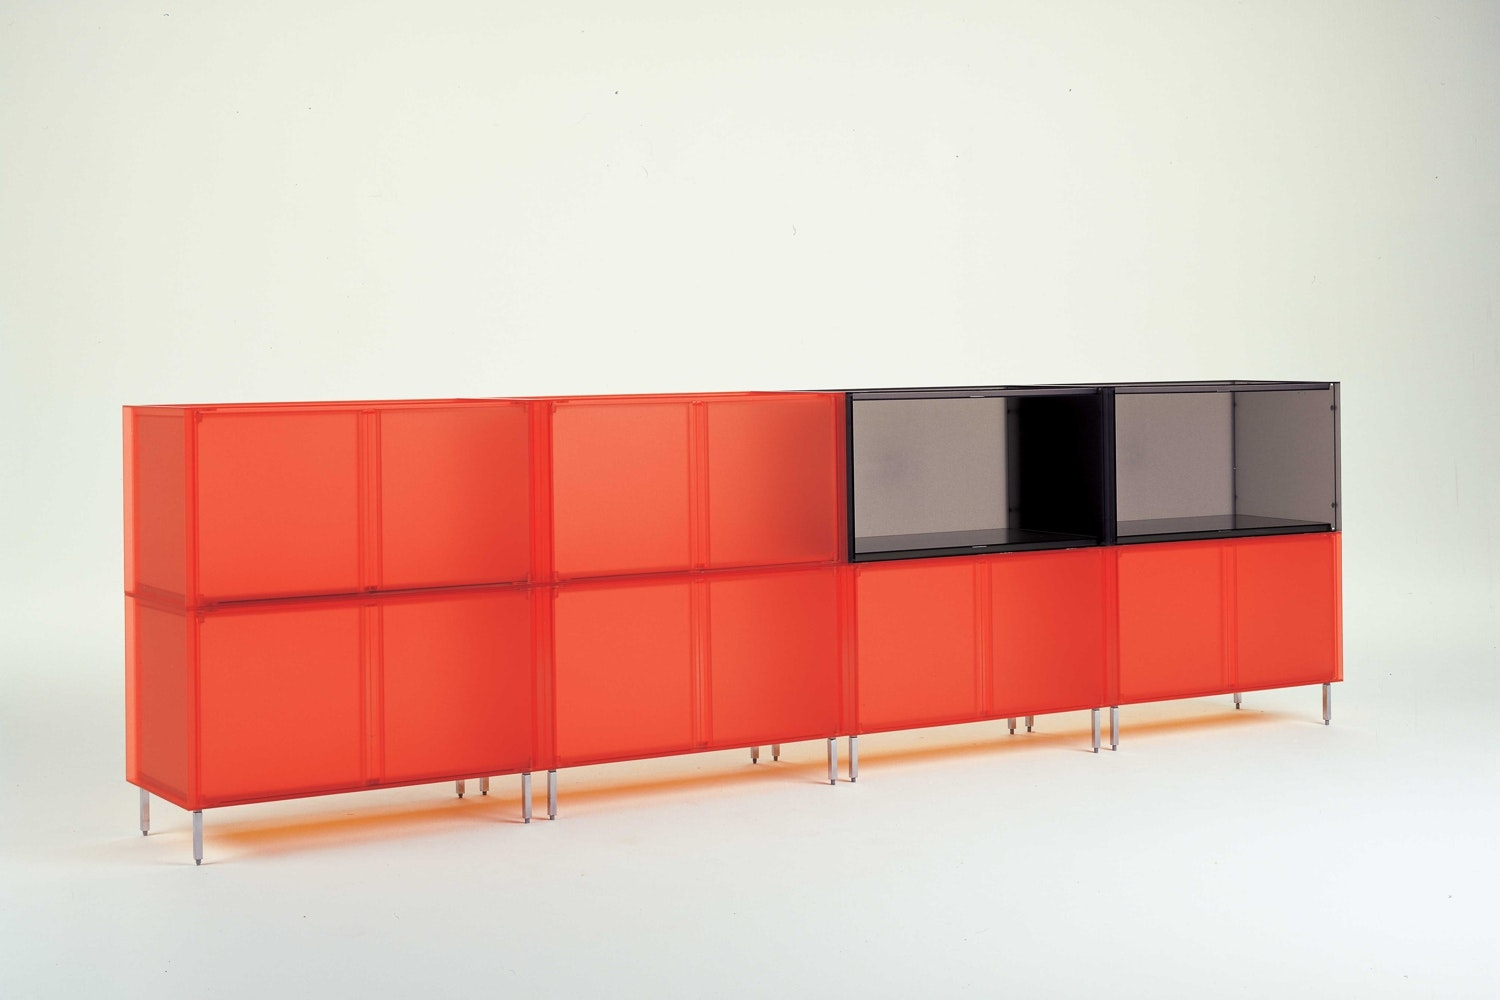 kartell container finest kartell container with kartell. Black Bedroom Furniture Sets. Home Design Ideas